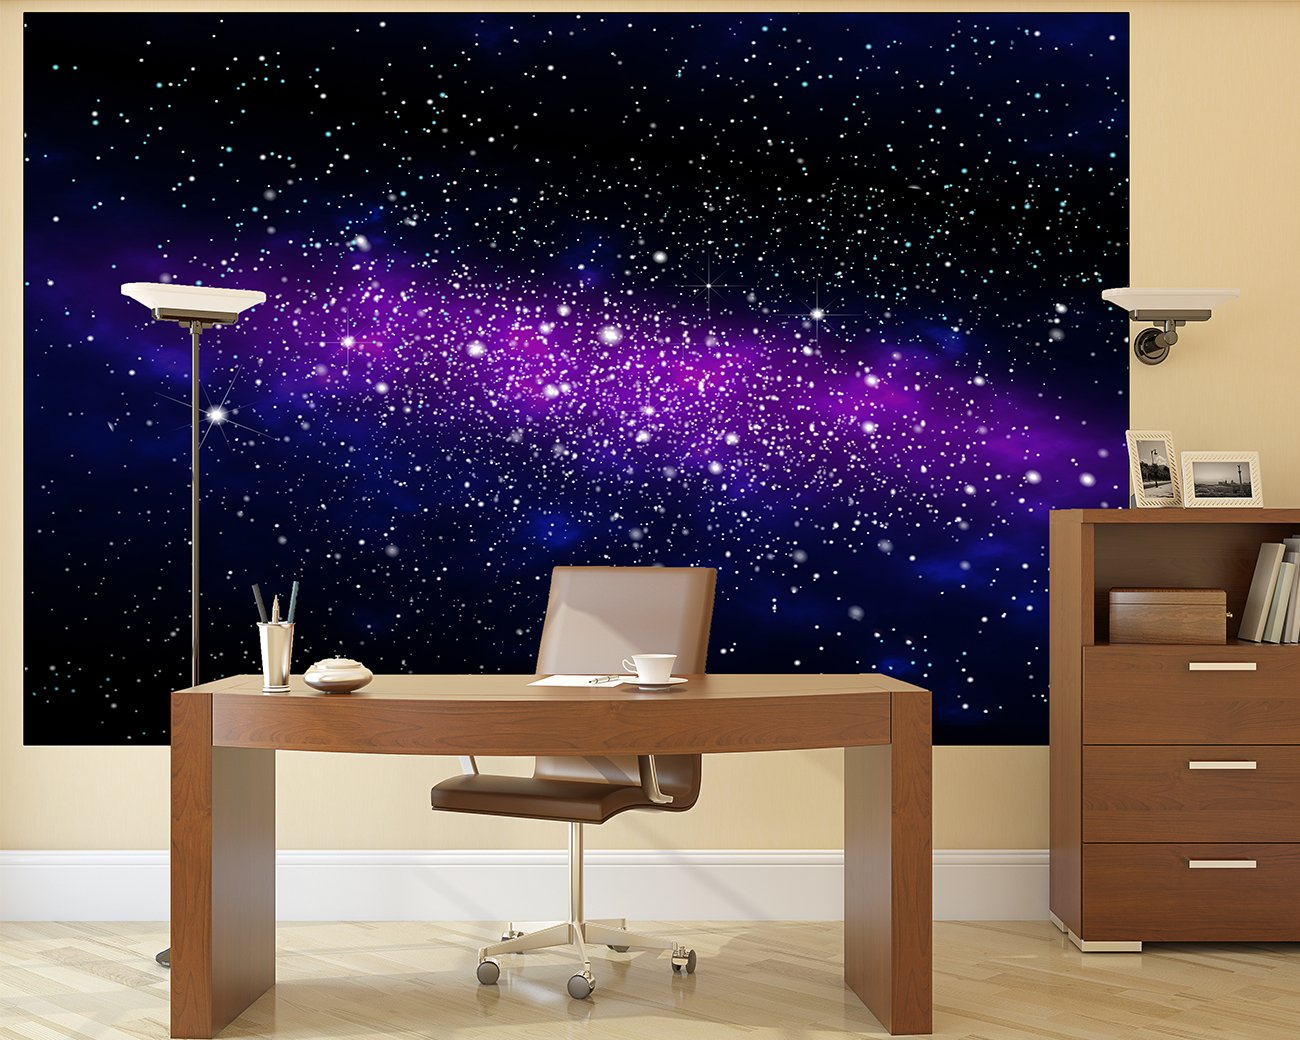 Space Bedroom Wallpaper Amazoncom Galaxy In The Universe Photo Wallpaper Space Mural